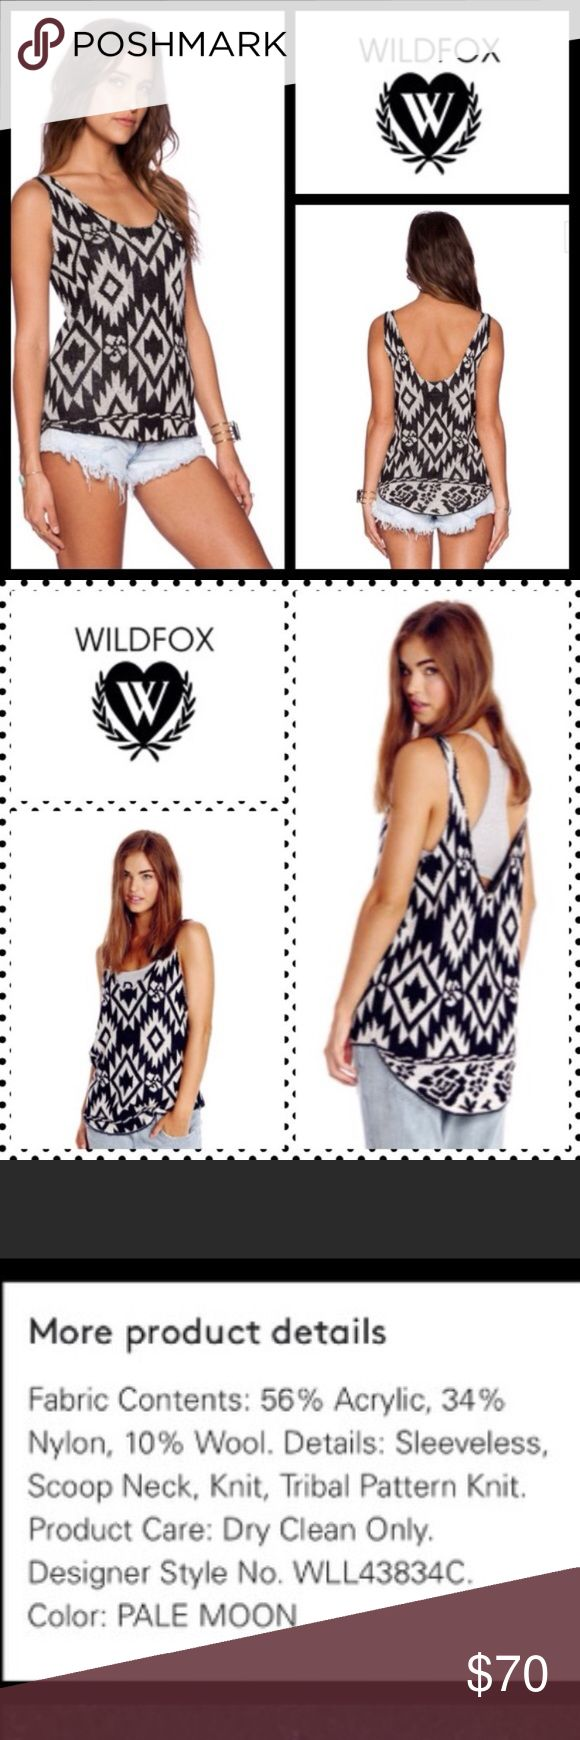 Wildfox white label tank White label black and white tribal print sweater tank top *MOVING I have to get rid of all of this stuff. Feel free to submit offers and bundle for discounts!* Wildfox Tops Tank Tops